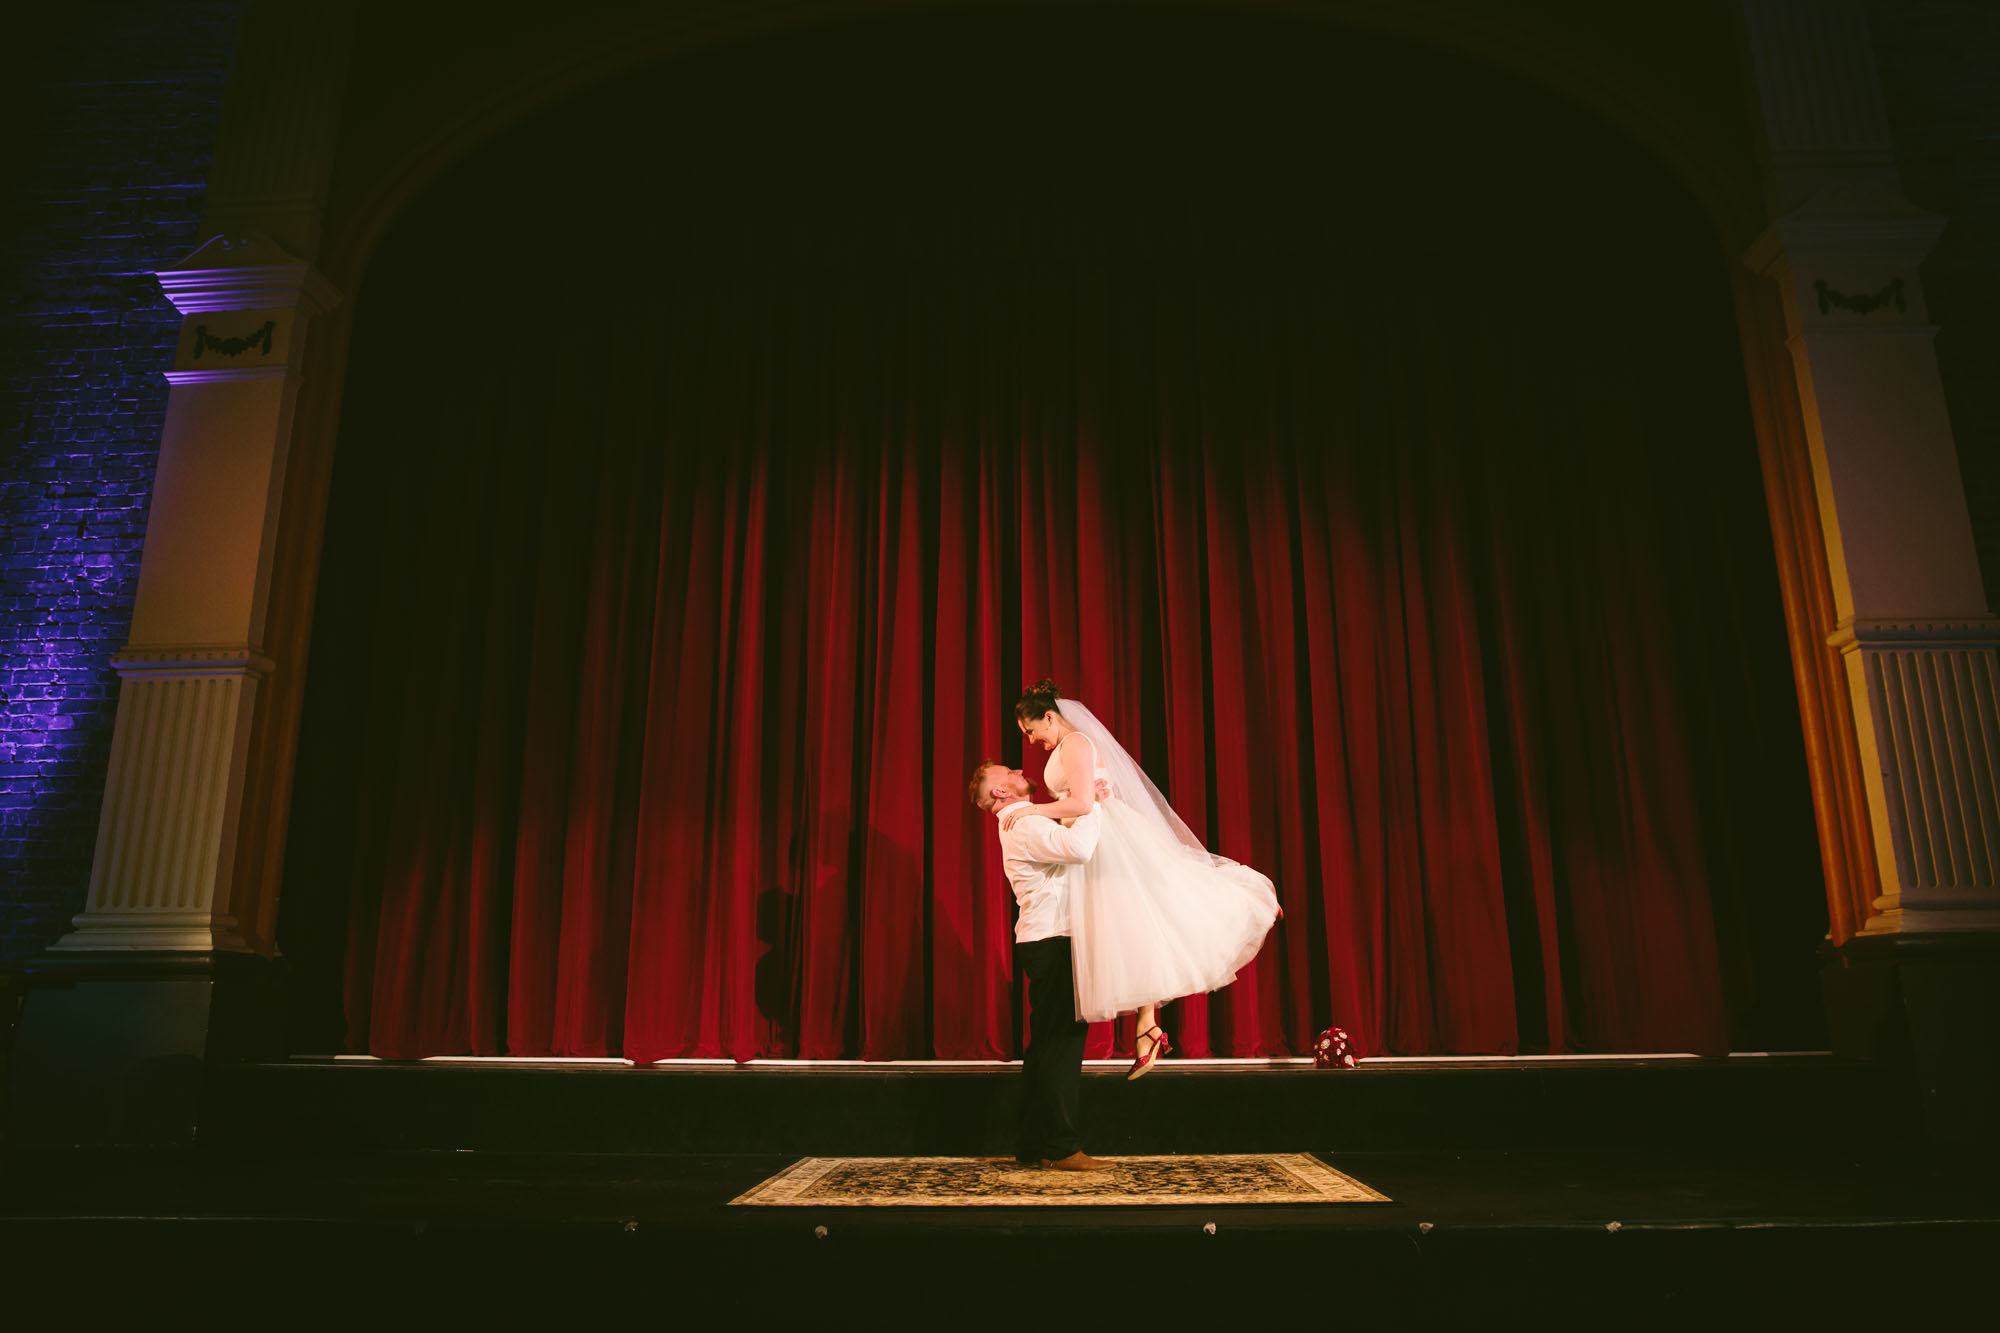 KelliMatt_PrincessTheatreBrisbaneWedding_AnnaOsetroffPhotographer_Website-87